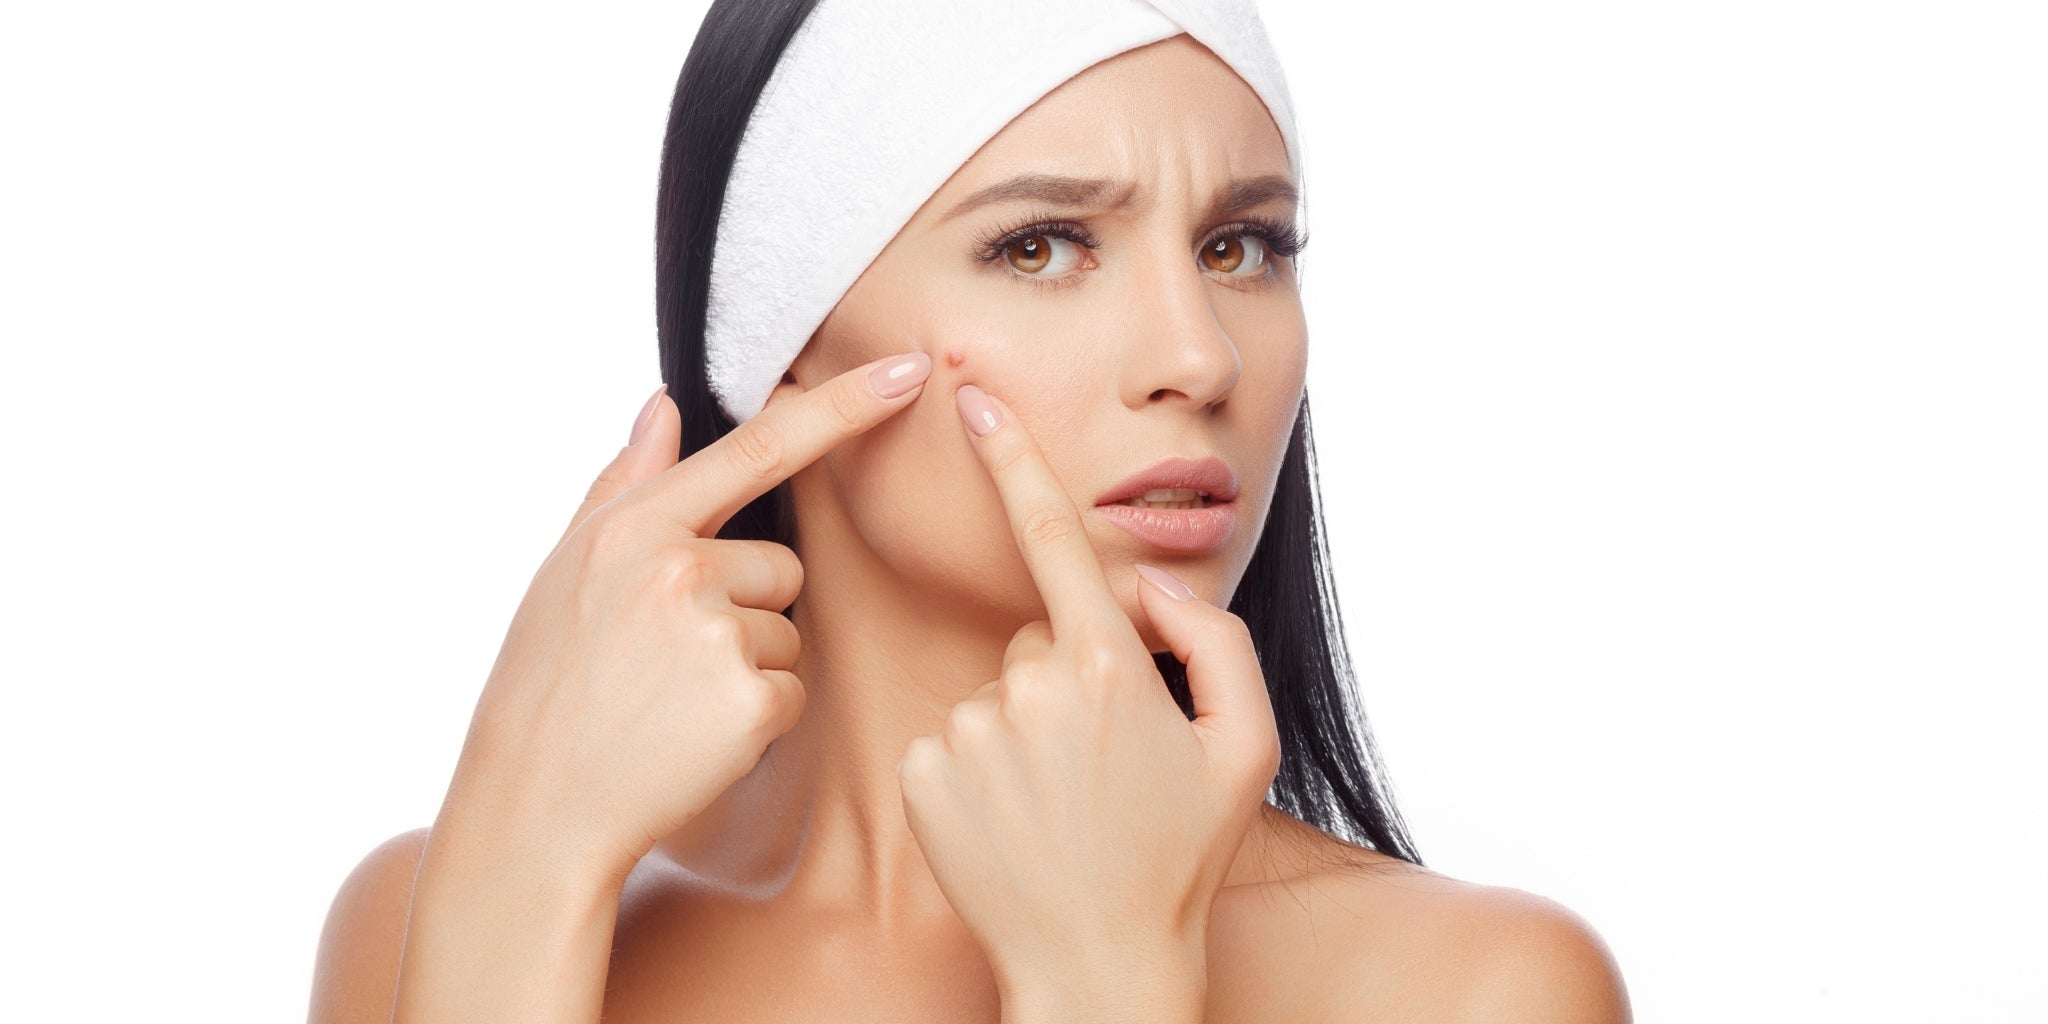 6 Tips for Acne and blemish-prone skin